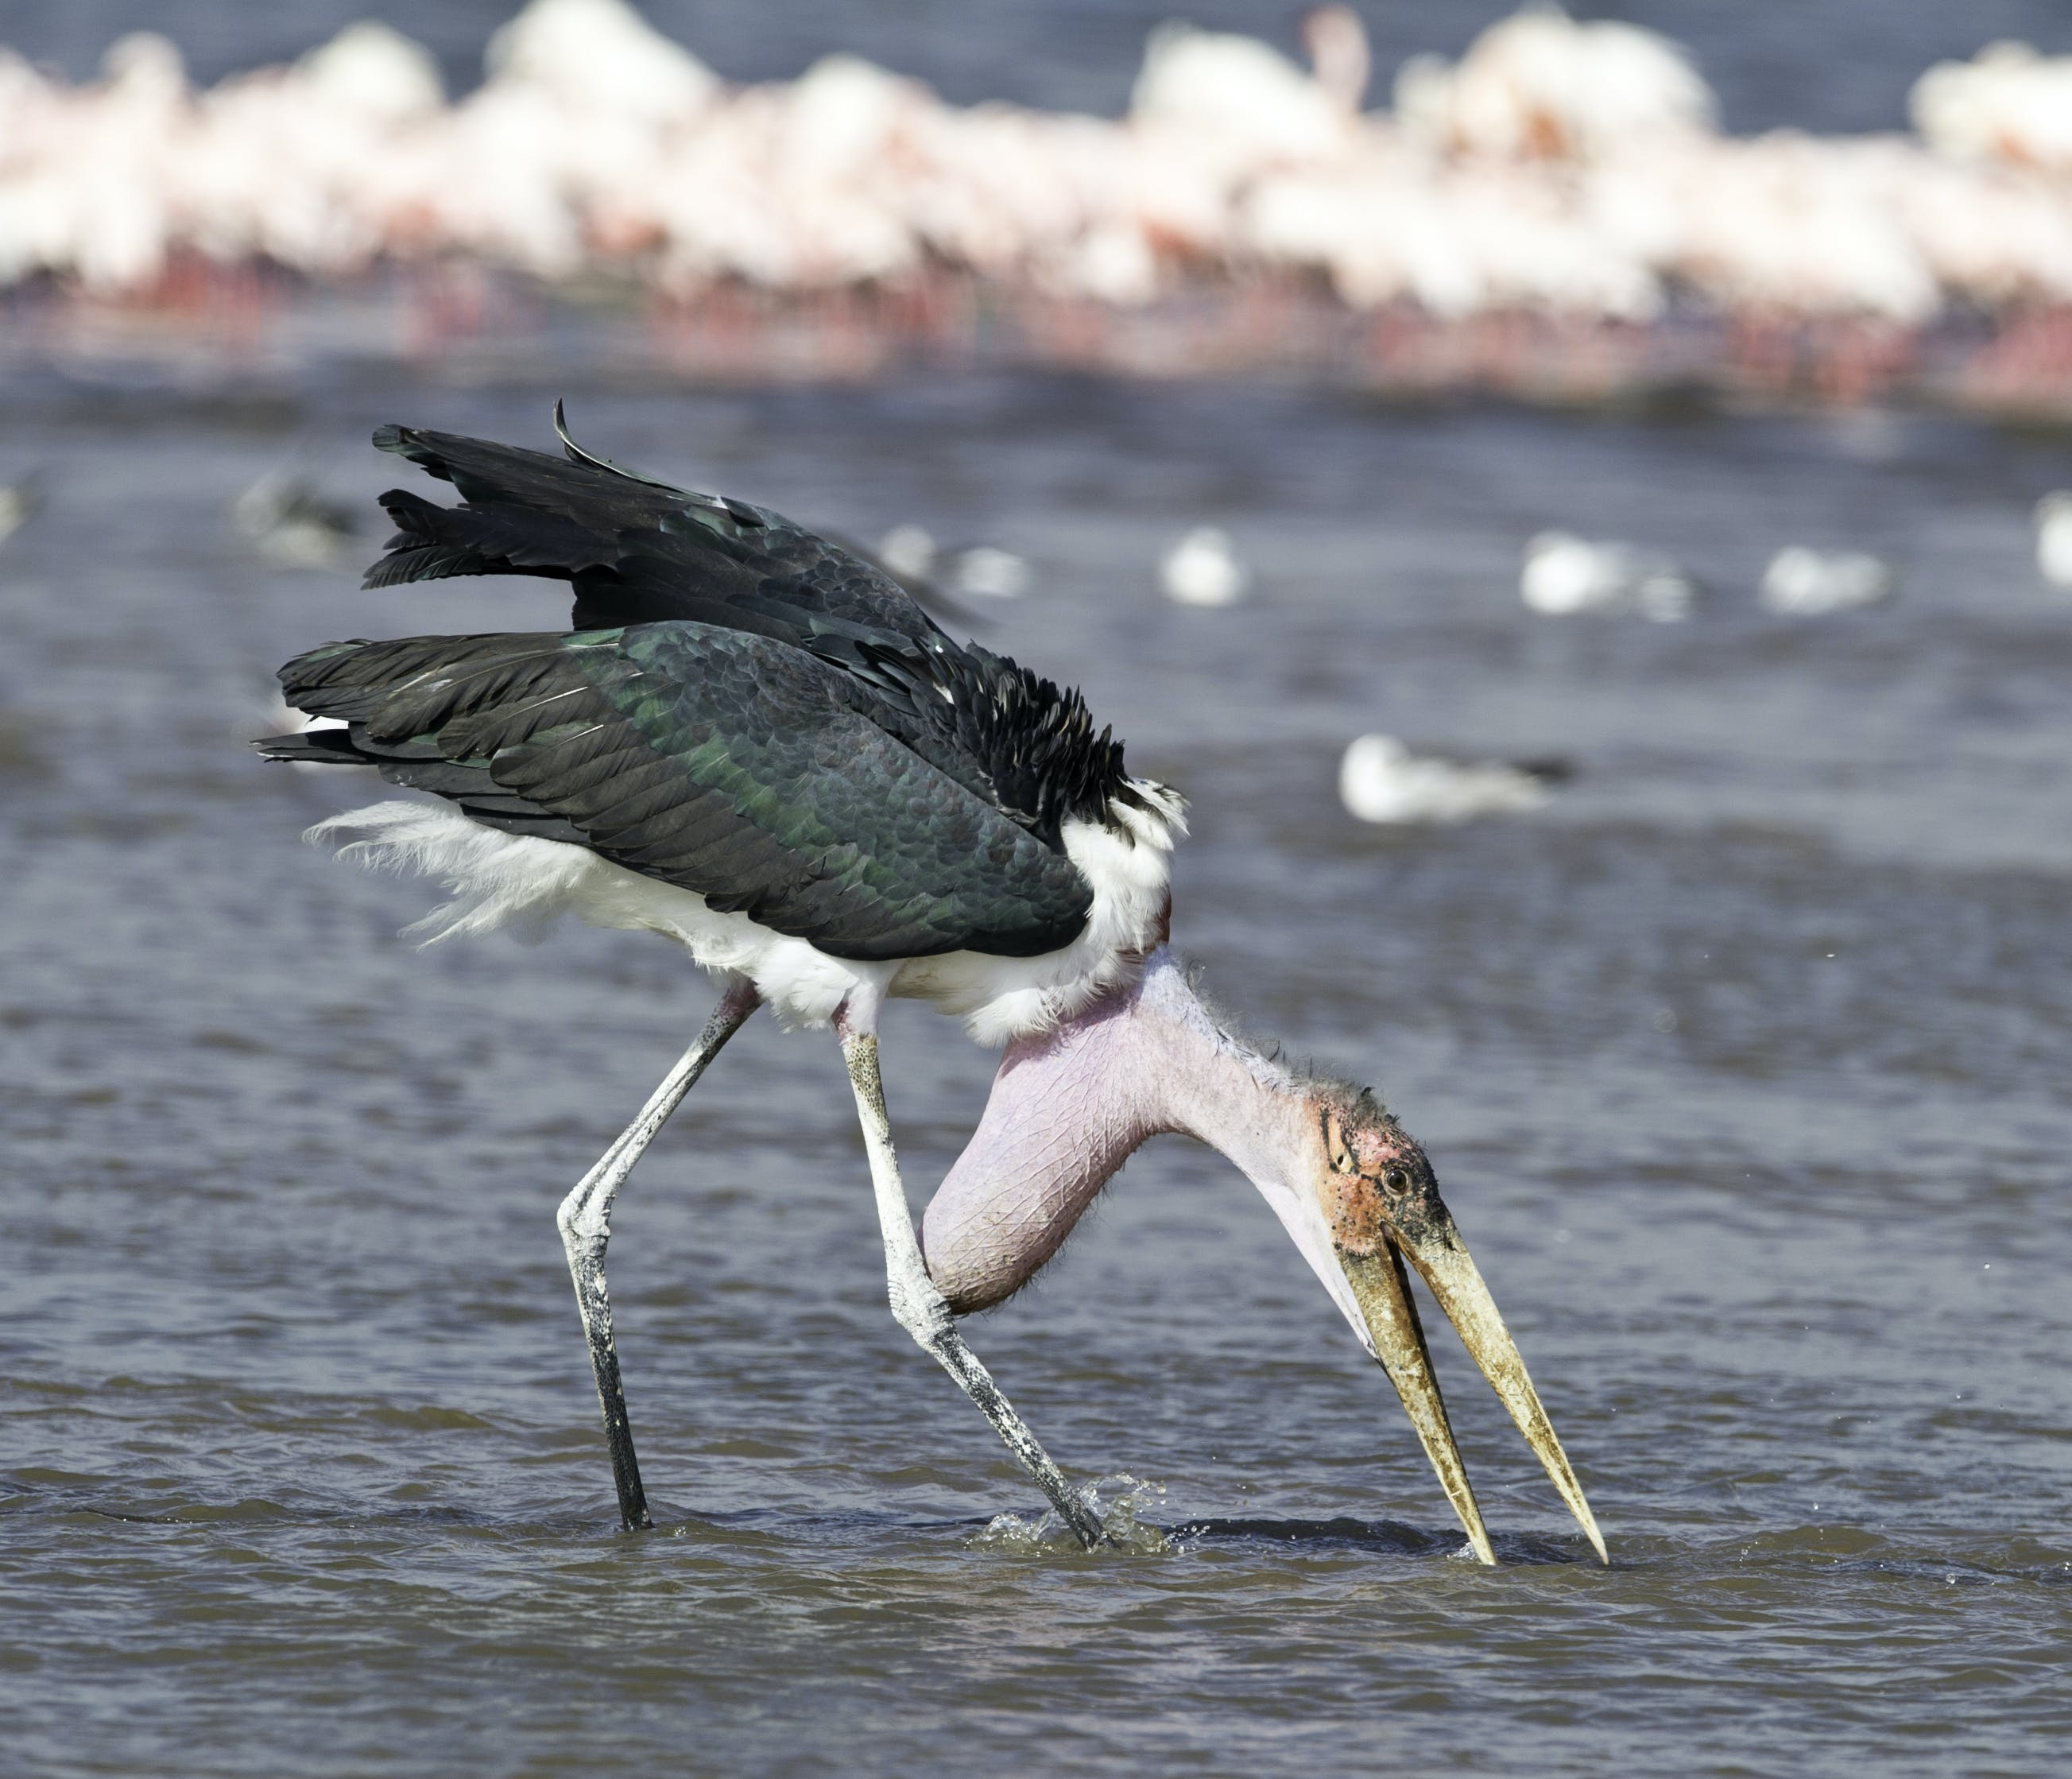 Marabou Stork Standing on Large Body of Water Selective Focus Photography